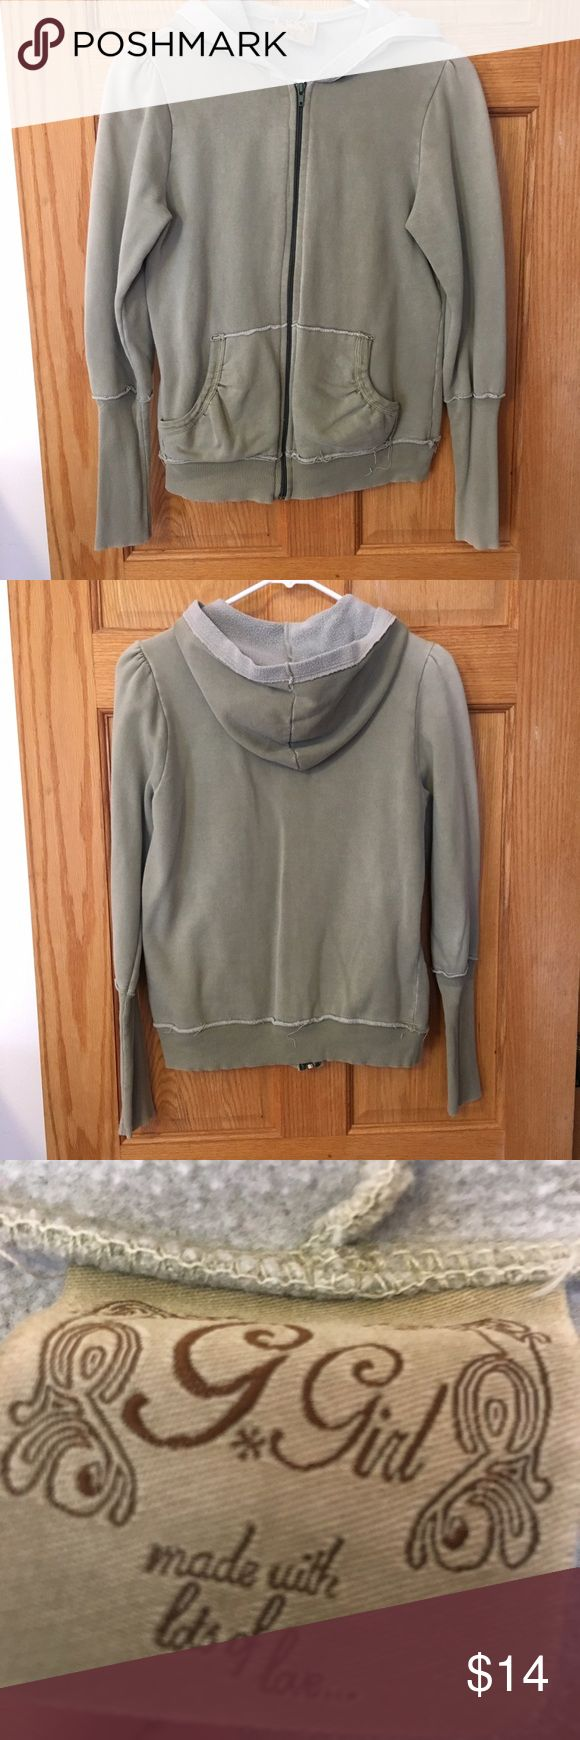 Olive green zip up hoodie Olive green zip up hoodie. Gently used, great condition. Smoke free home. G Girl Tops Sweatshirts & Hoodies